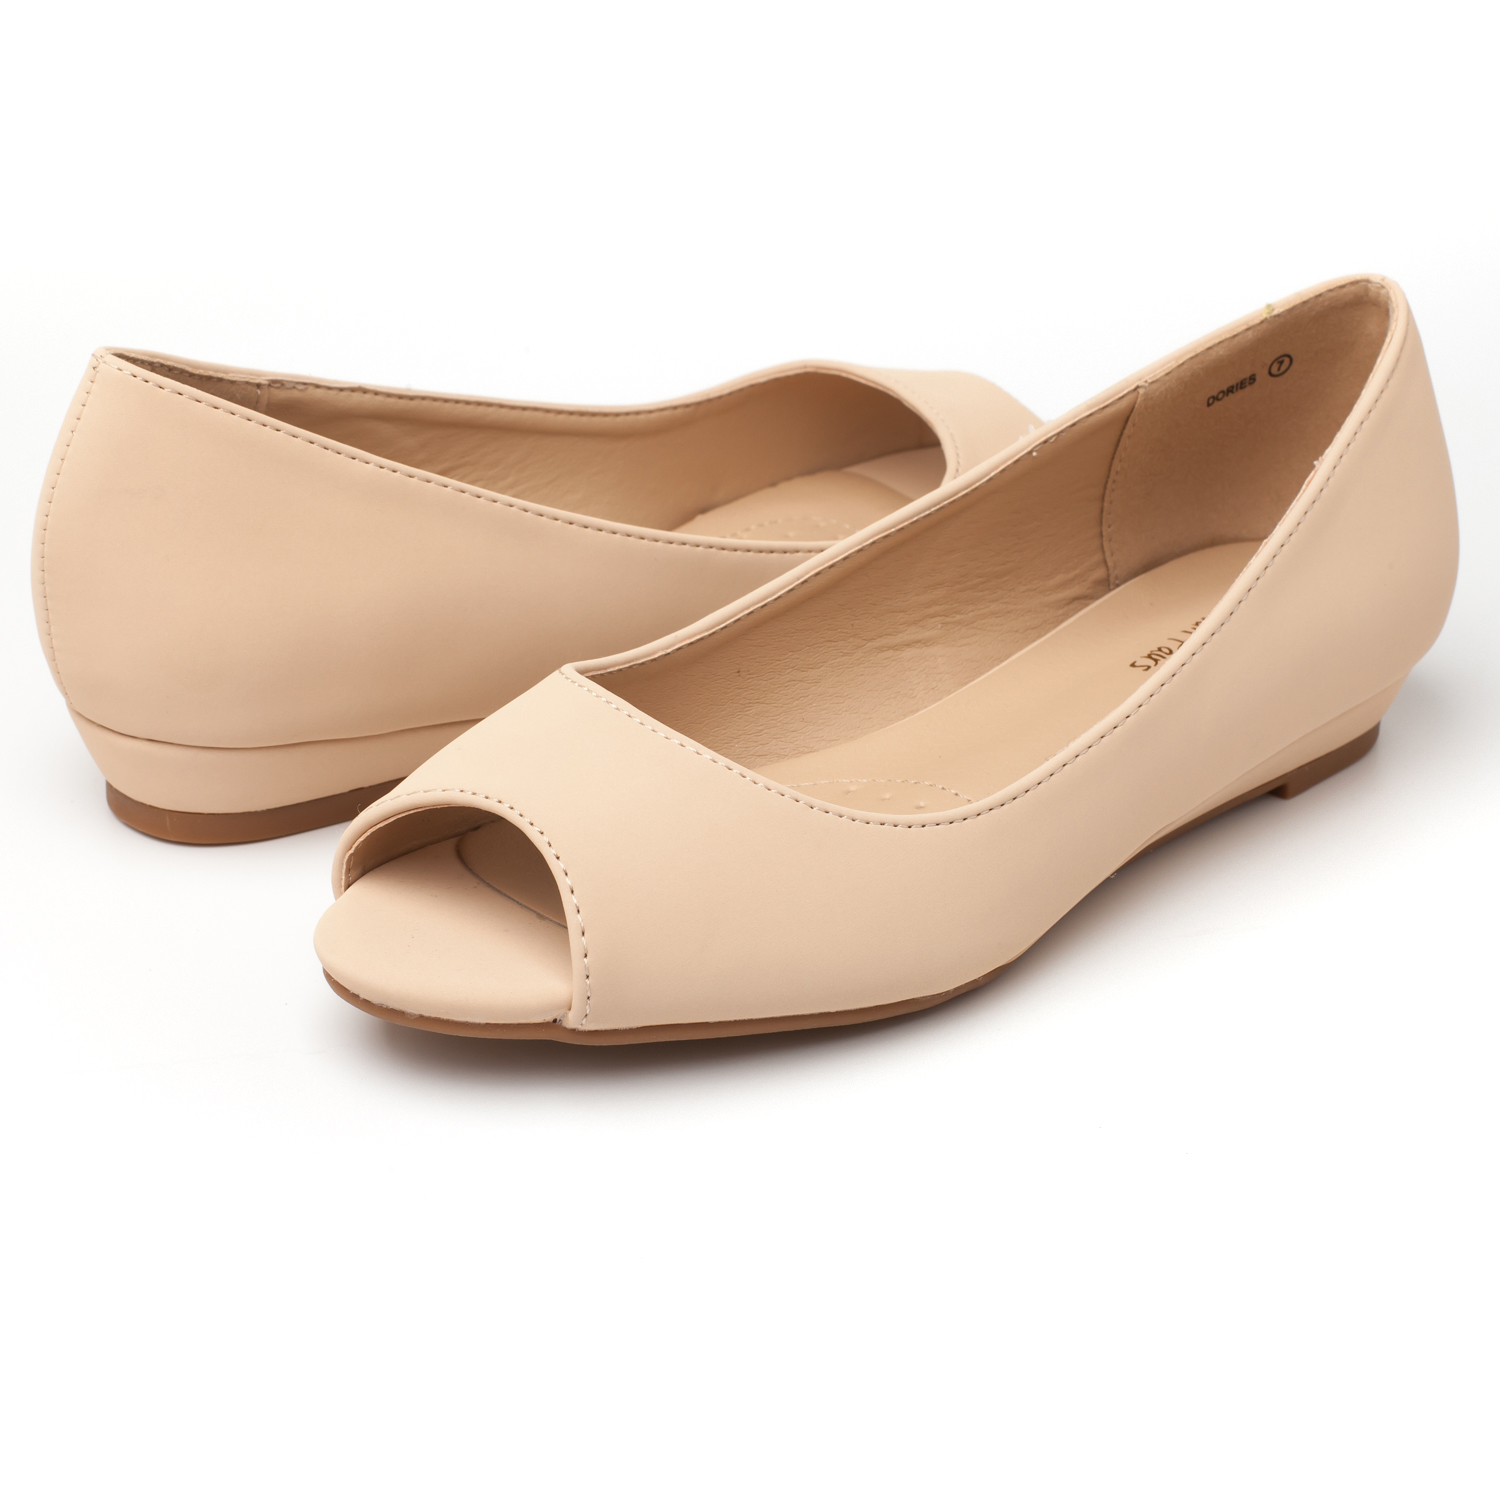 DREAM-PAIRS-Womens-Ballet-Flats-Low-Heel-Open-Toe-Slip-On-Dress-Flat-Shoes thumbnail 47